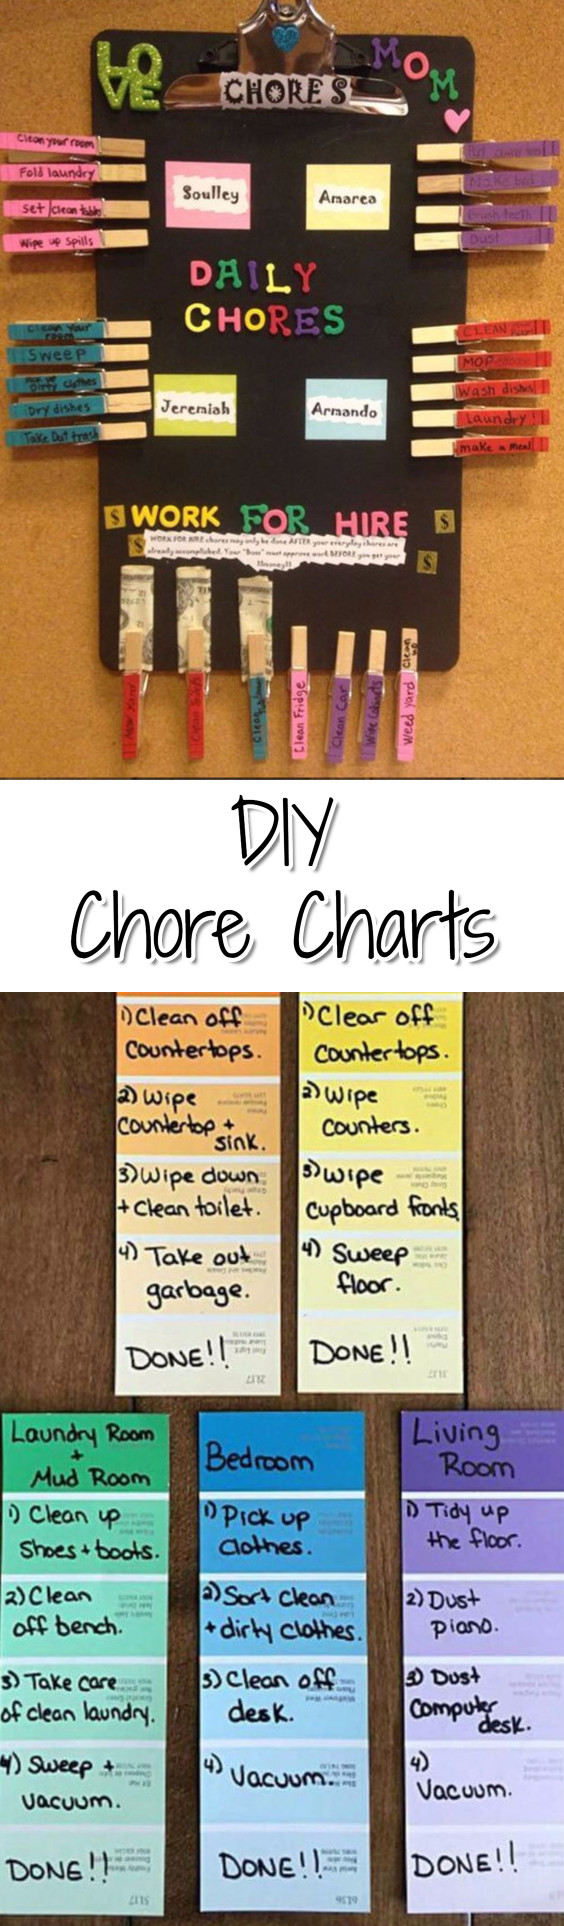 Chore Charts!  Lots of DIY chore chart ideas for your kids